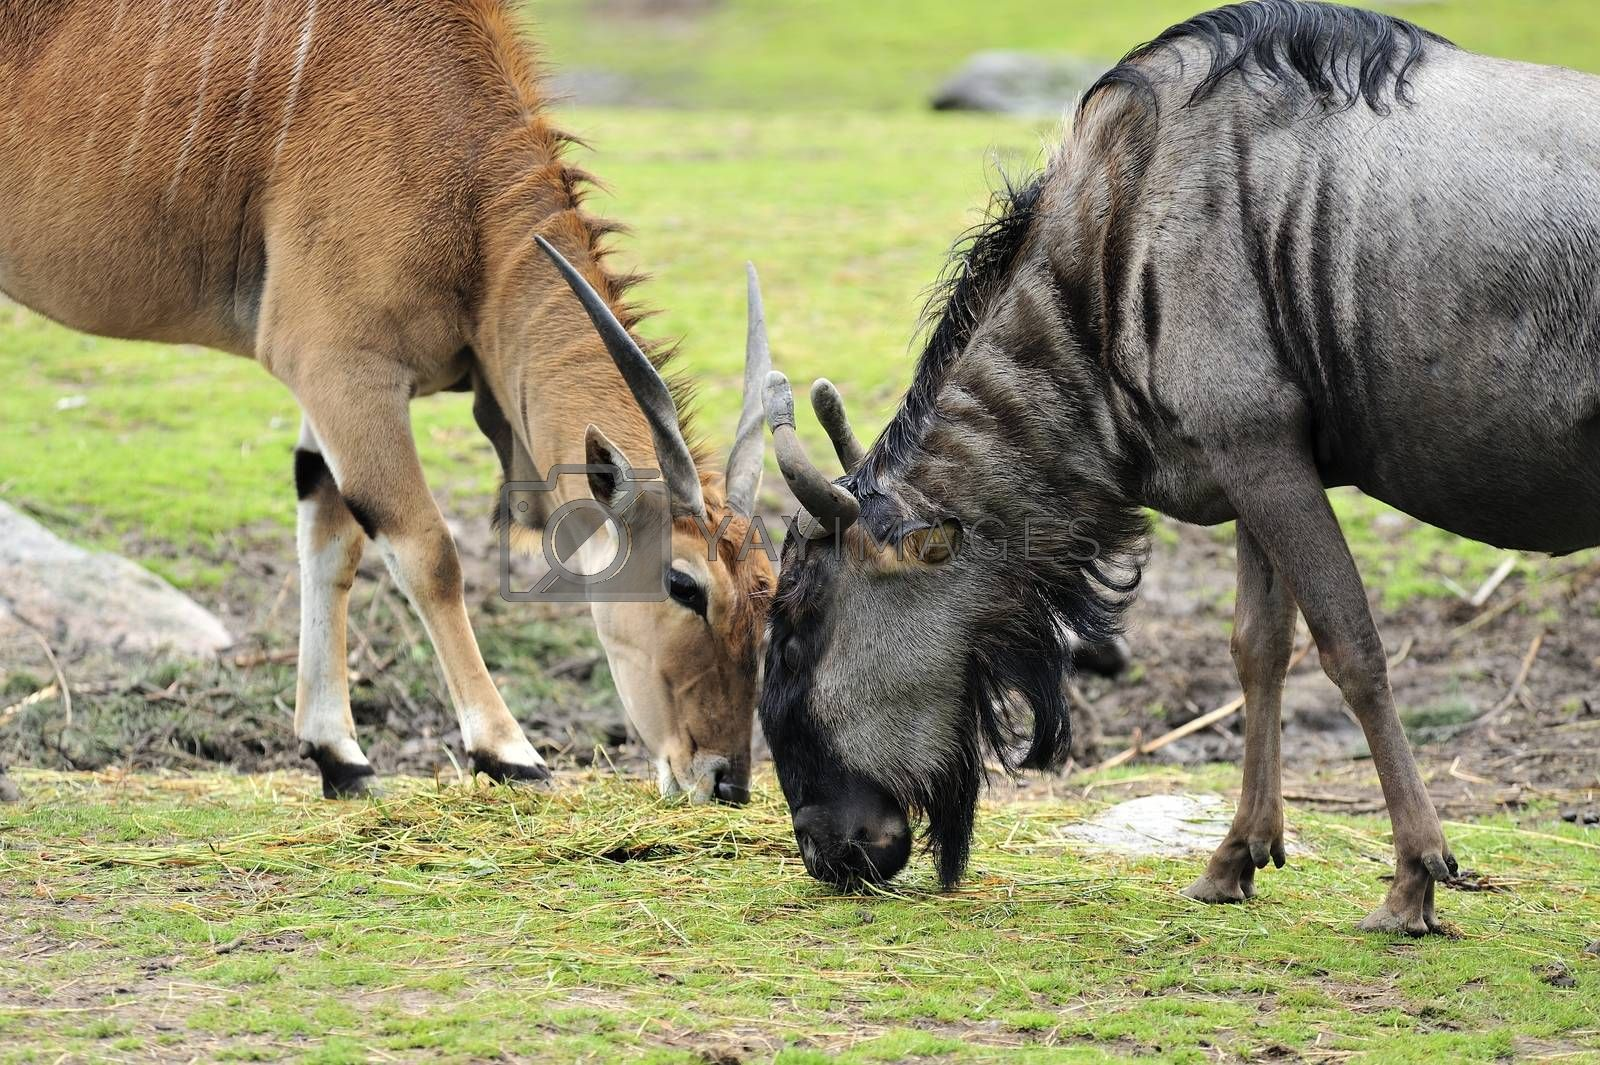 Closeup of a Wildebeest and a Antelope